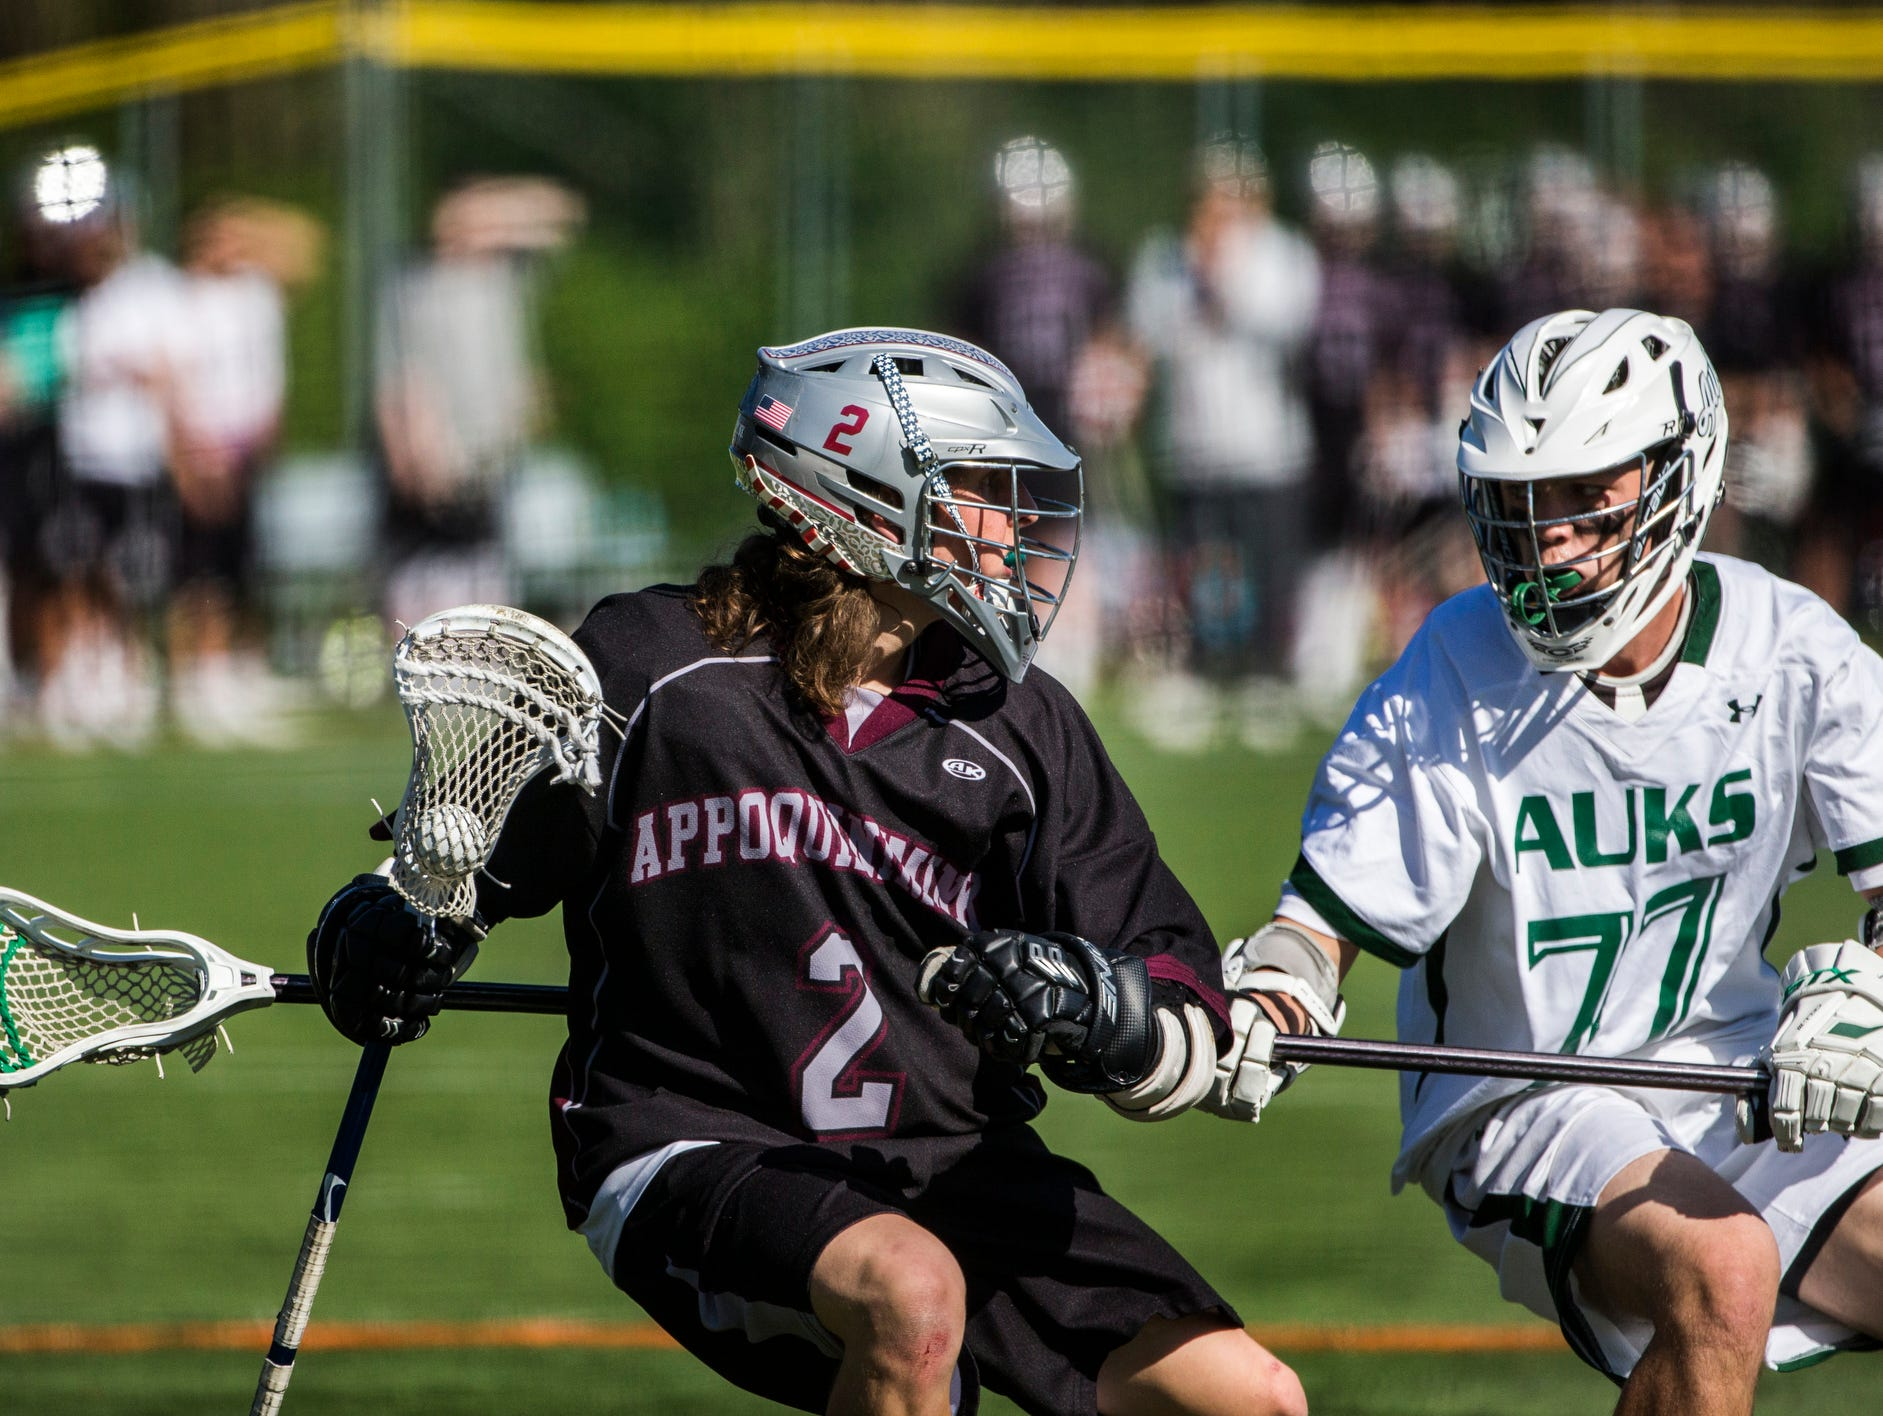 Appoquinimink's Logan Yoder (No. 2) works against Archmere's Ryan Whelan (No. 77) in the first quarter of Appoquinimink's 13-12 win over Archmere at Archmere Academy on Wednesday afternoon.